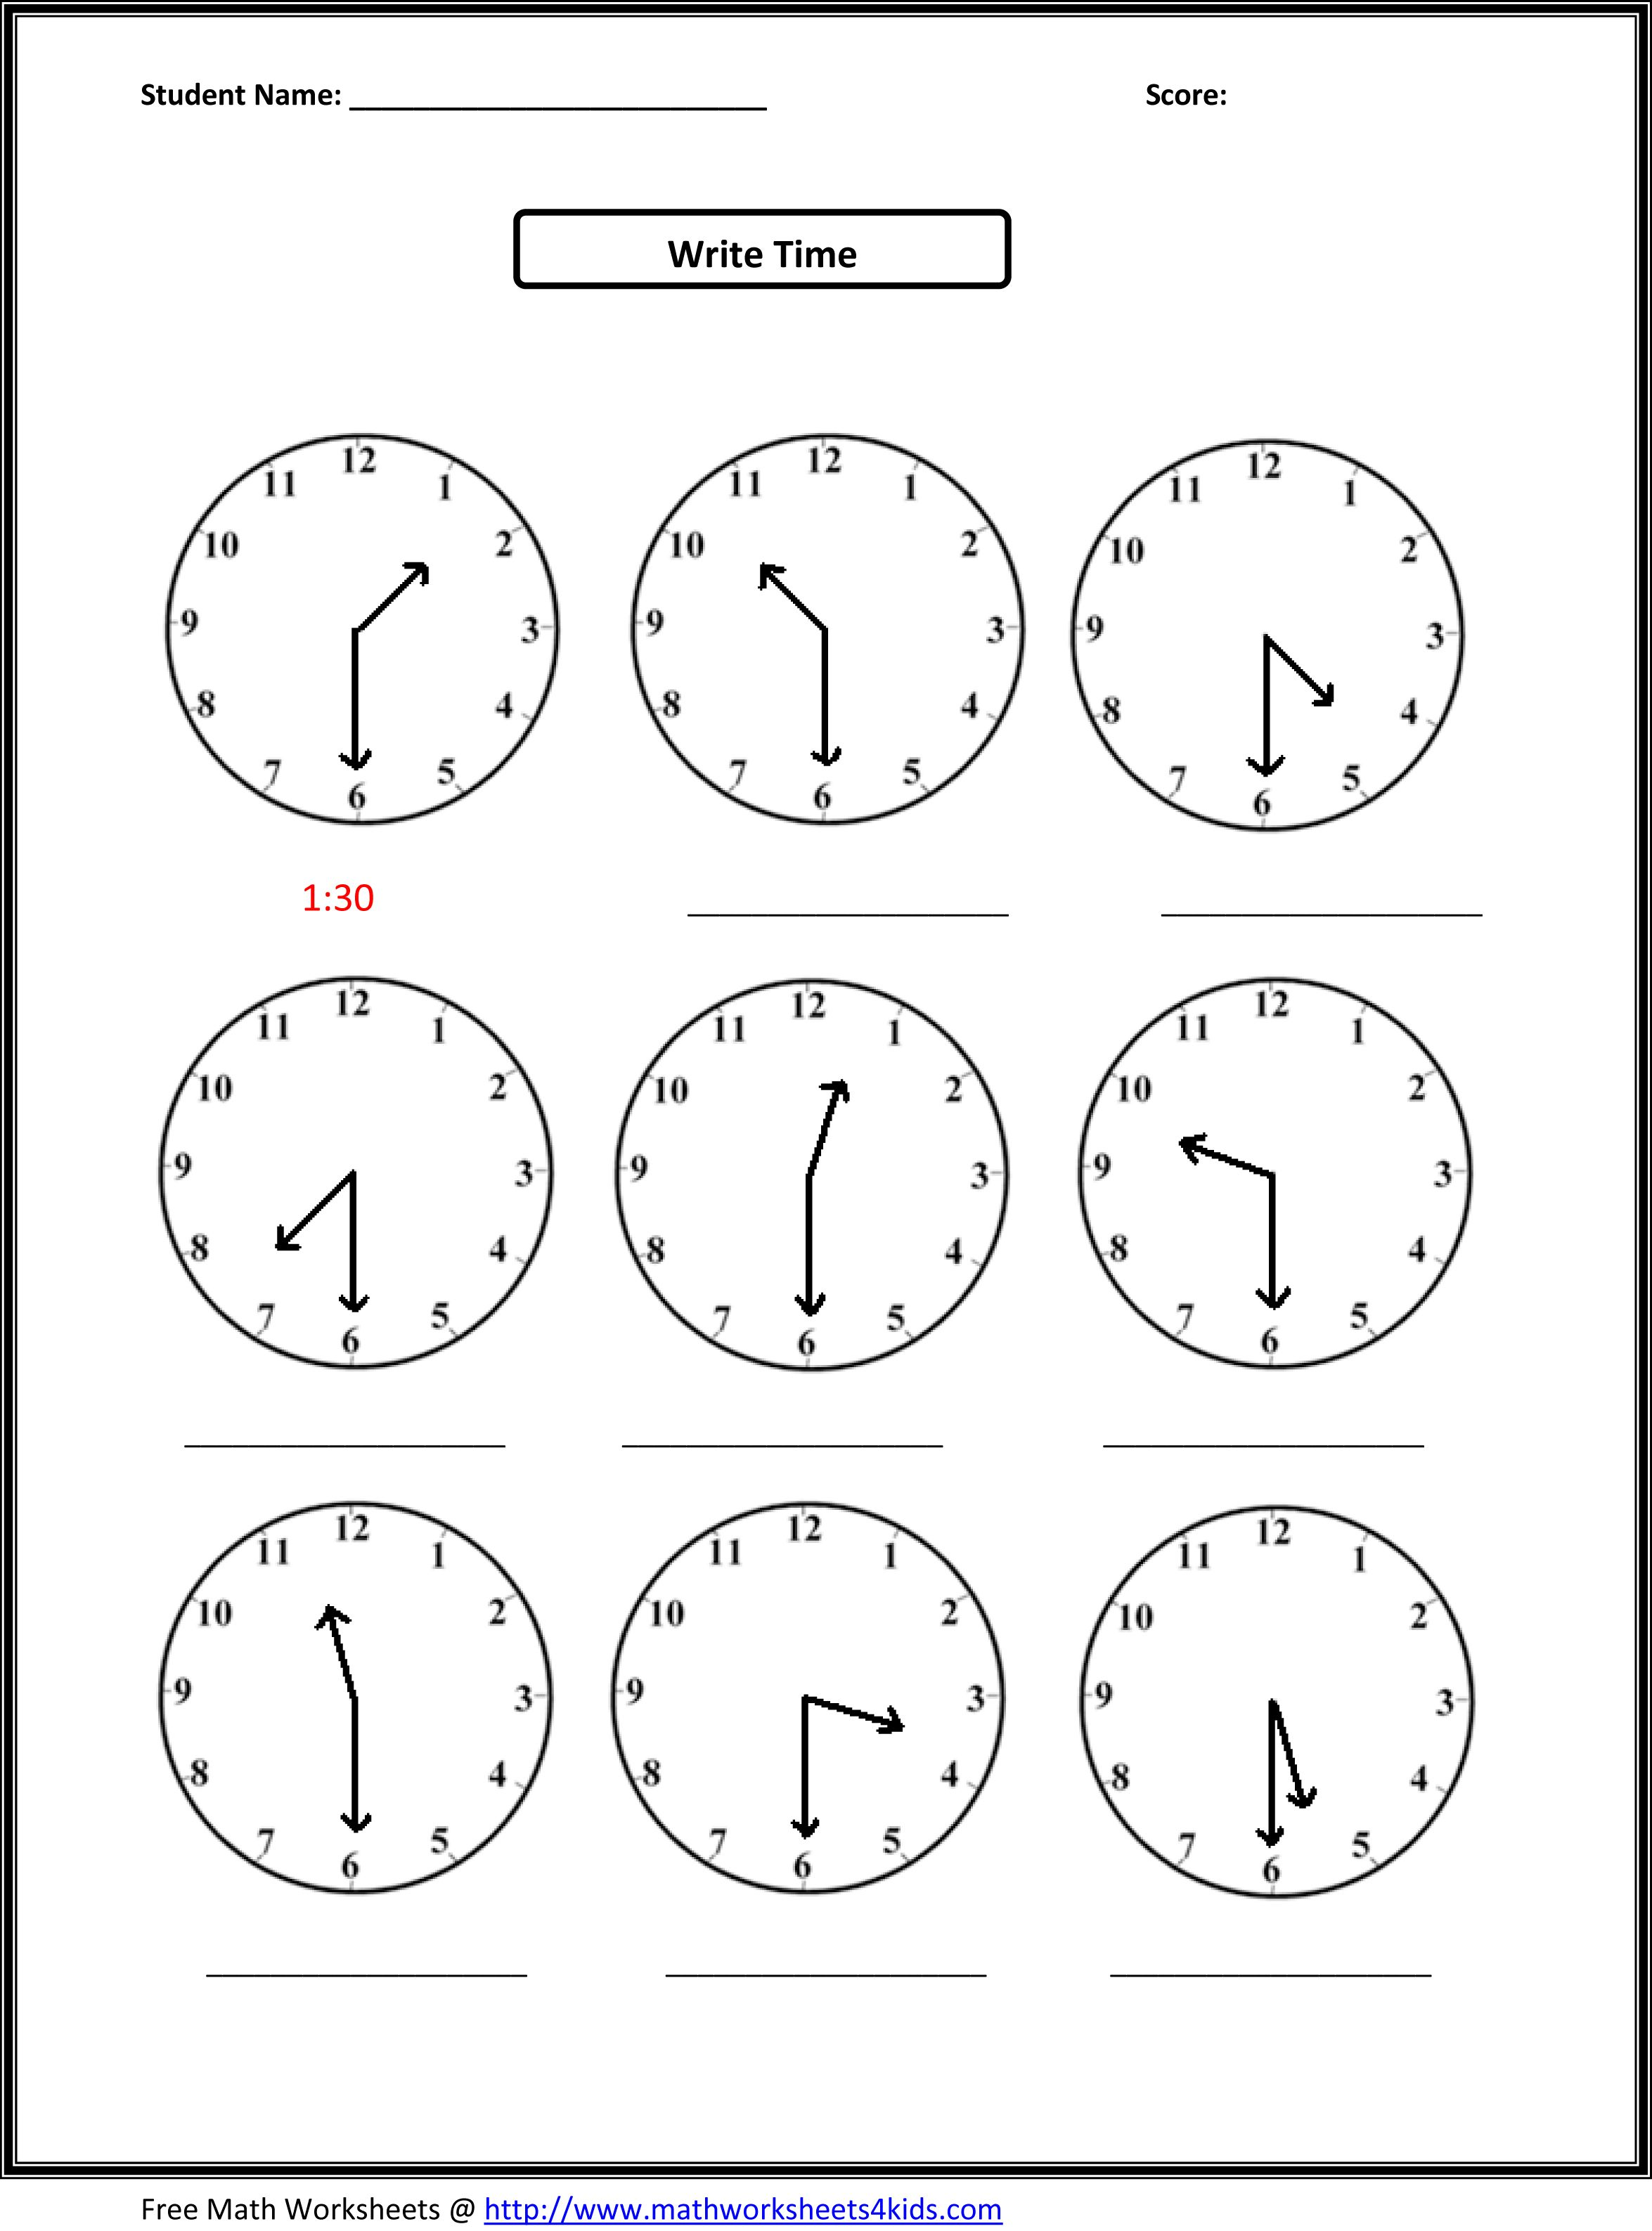 Weirdmailus  Stunning Worksheet On Time For Grade   Reocurent With Magnificent Free Printable Telling Time Worksheets Nd Grade  Reocurent With Agreeable Self Worth Worksheets Also Main Idea Worksheet Nd Grade In Addition Customizable Handwriting Worksheets And Dictionary Worksheet As Well As Mayan Math Worksheet Additionally Get Worksheets From Reocurentcom With Weirdmailus  Magnificent Worksheet On Time For Grade   Reocurent With Agreeable Free Printable Telling Time Worksheets Nd Grade  Reocurent And Stunning Self Worth Worksheets Also Main Idea Worksheet Nd Grade In Addition Customizable Handwriting Worksheets From Reocurentcom